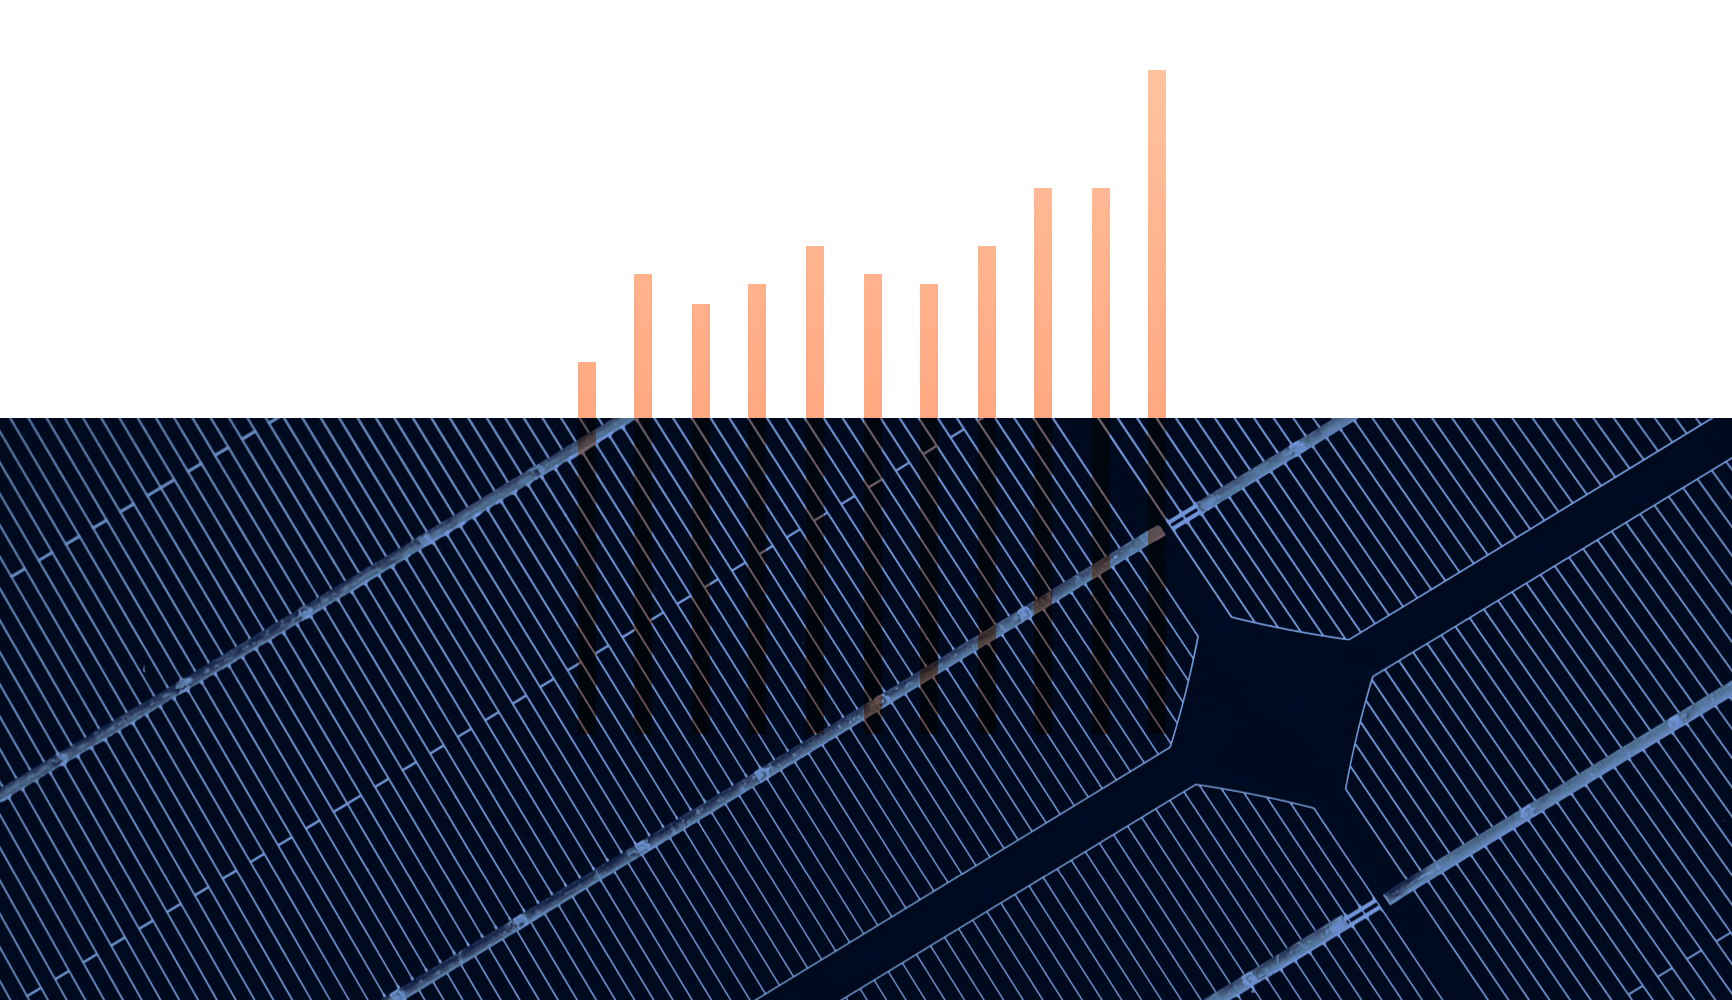 The Otovo Solar Insight: Solar Payback Trends 2019